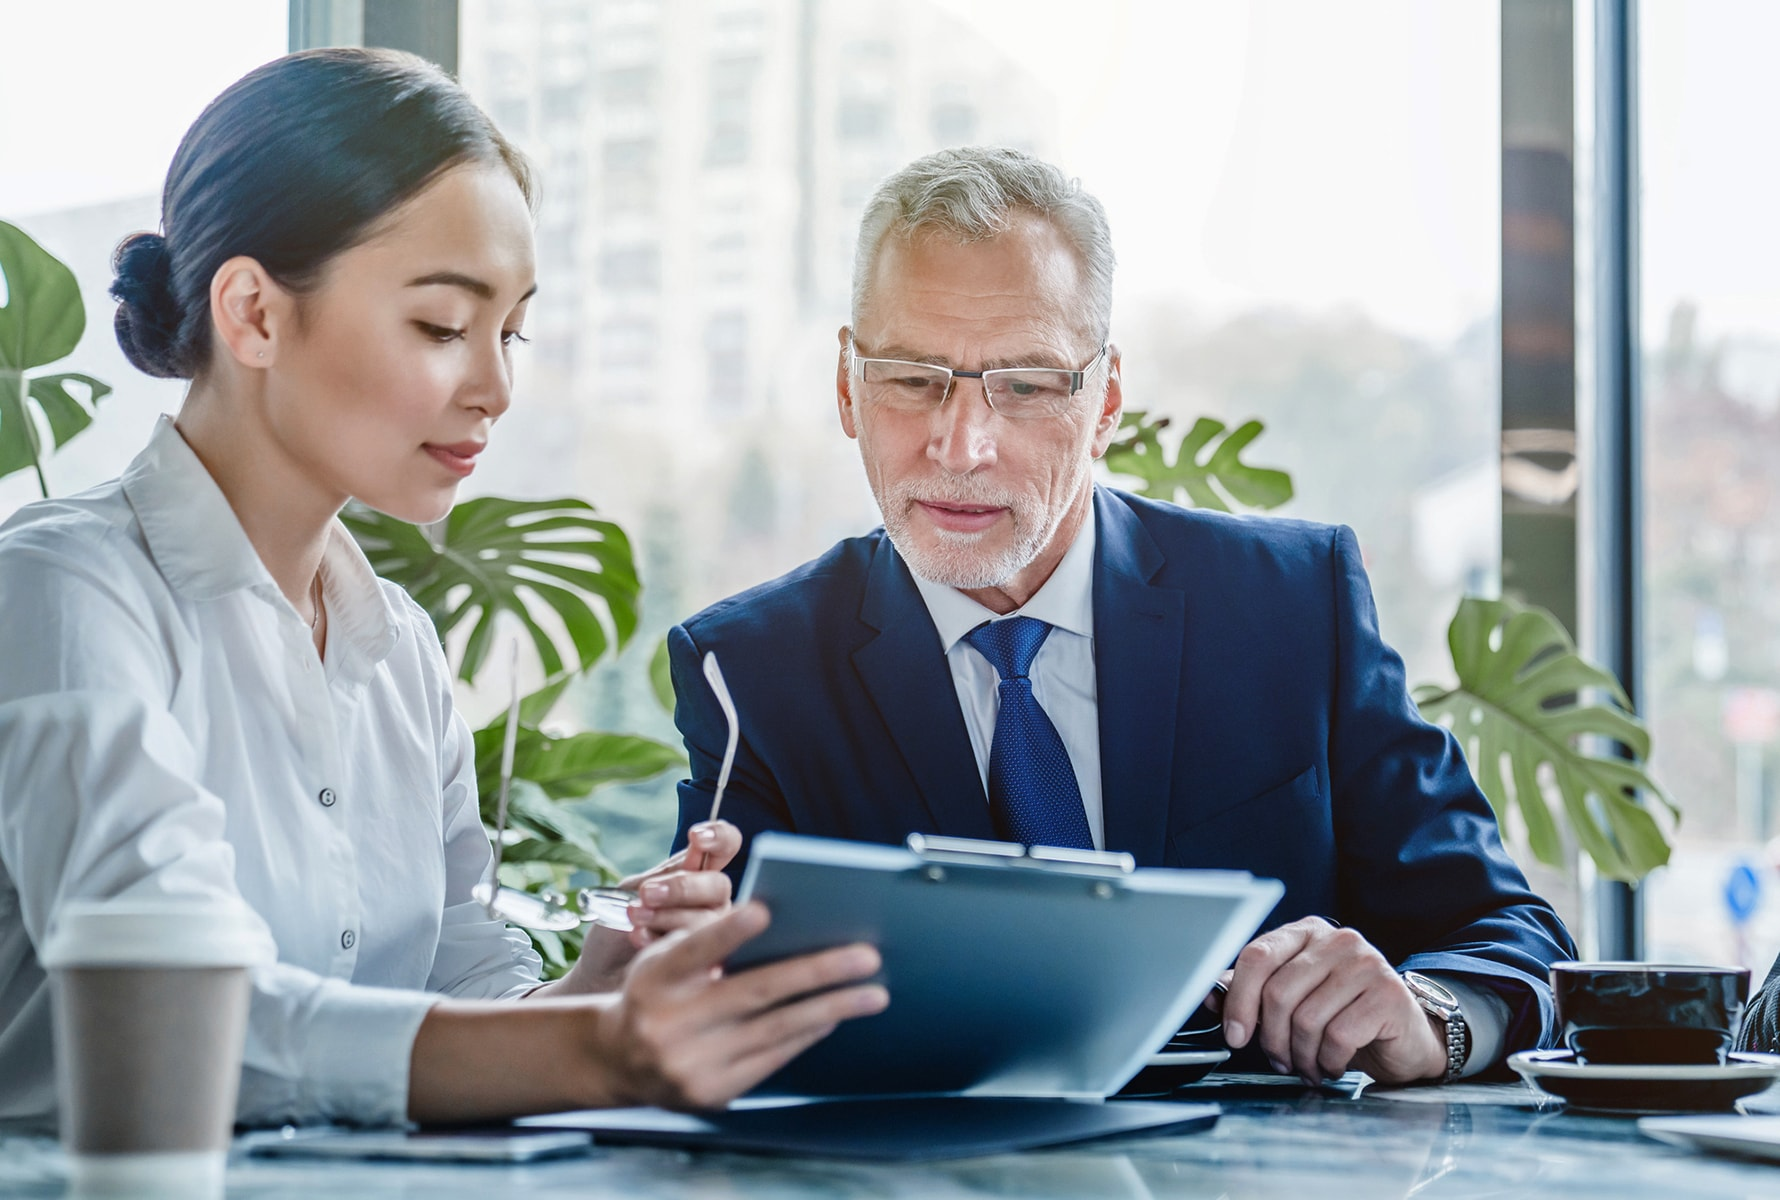 Business age gap article highlight